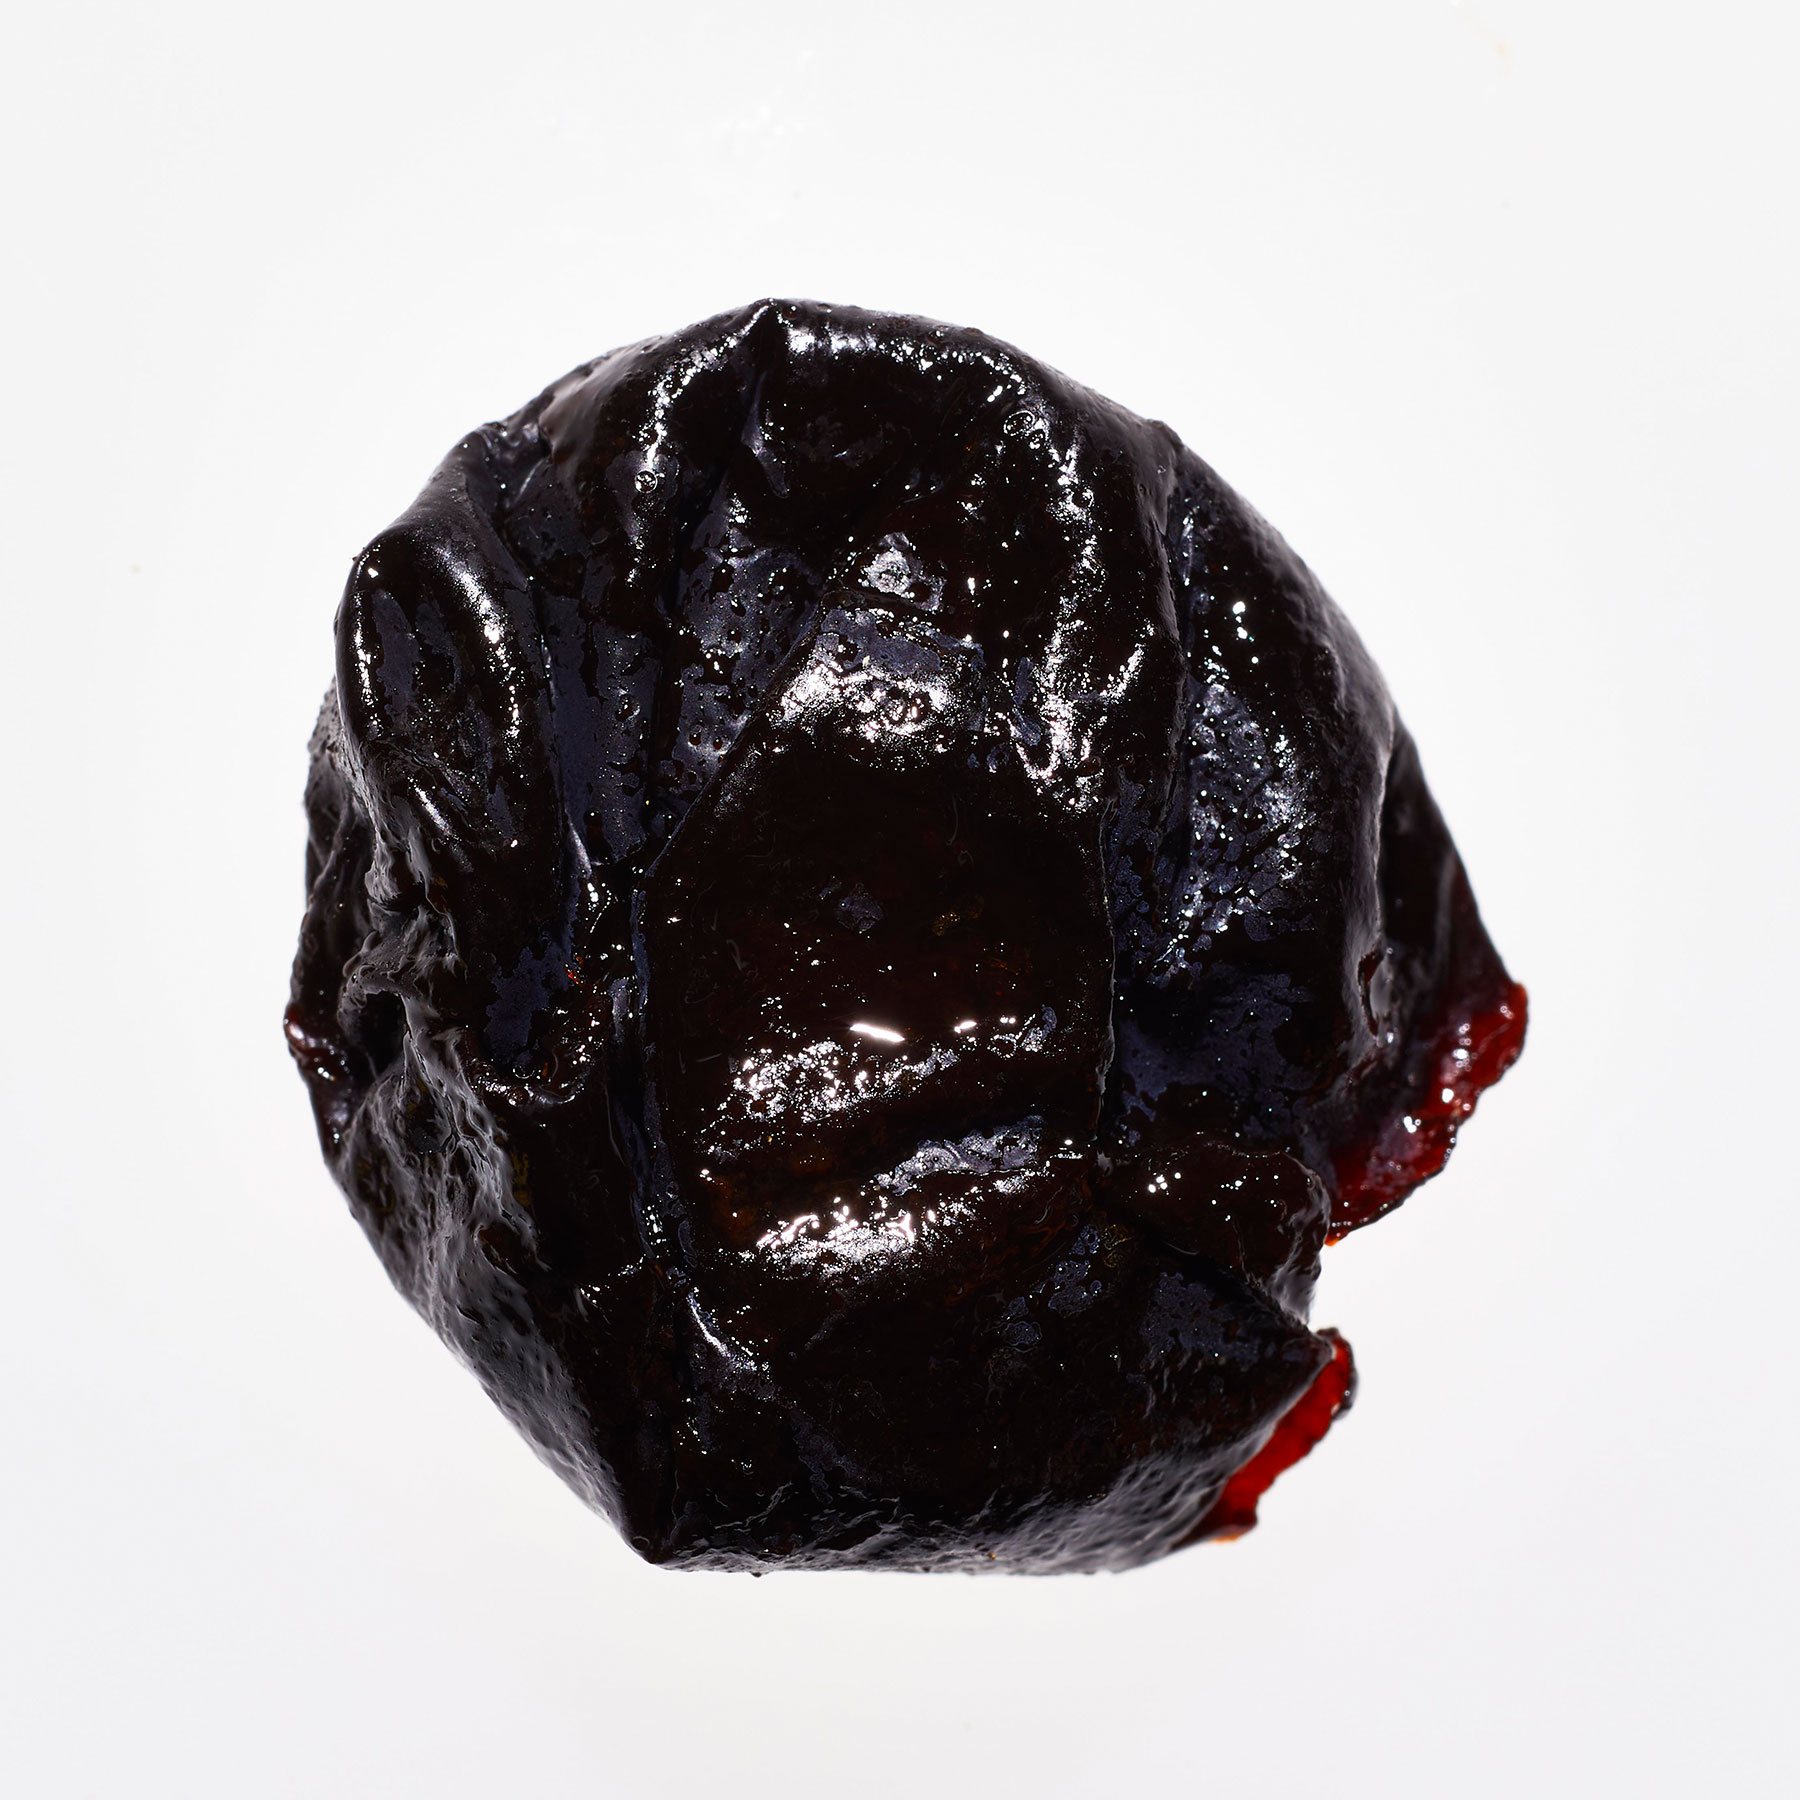 Superfoods to Know About: Prunes